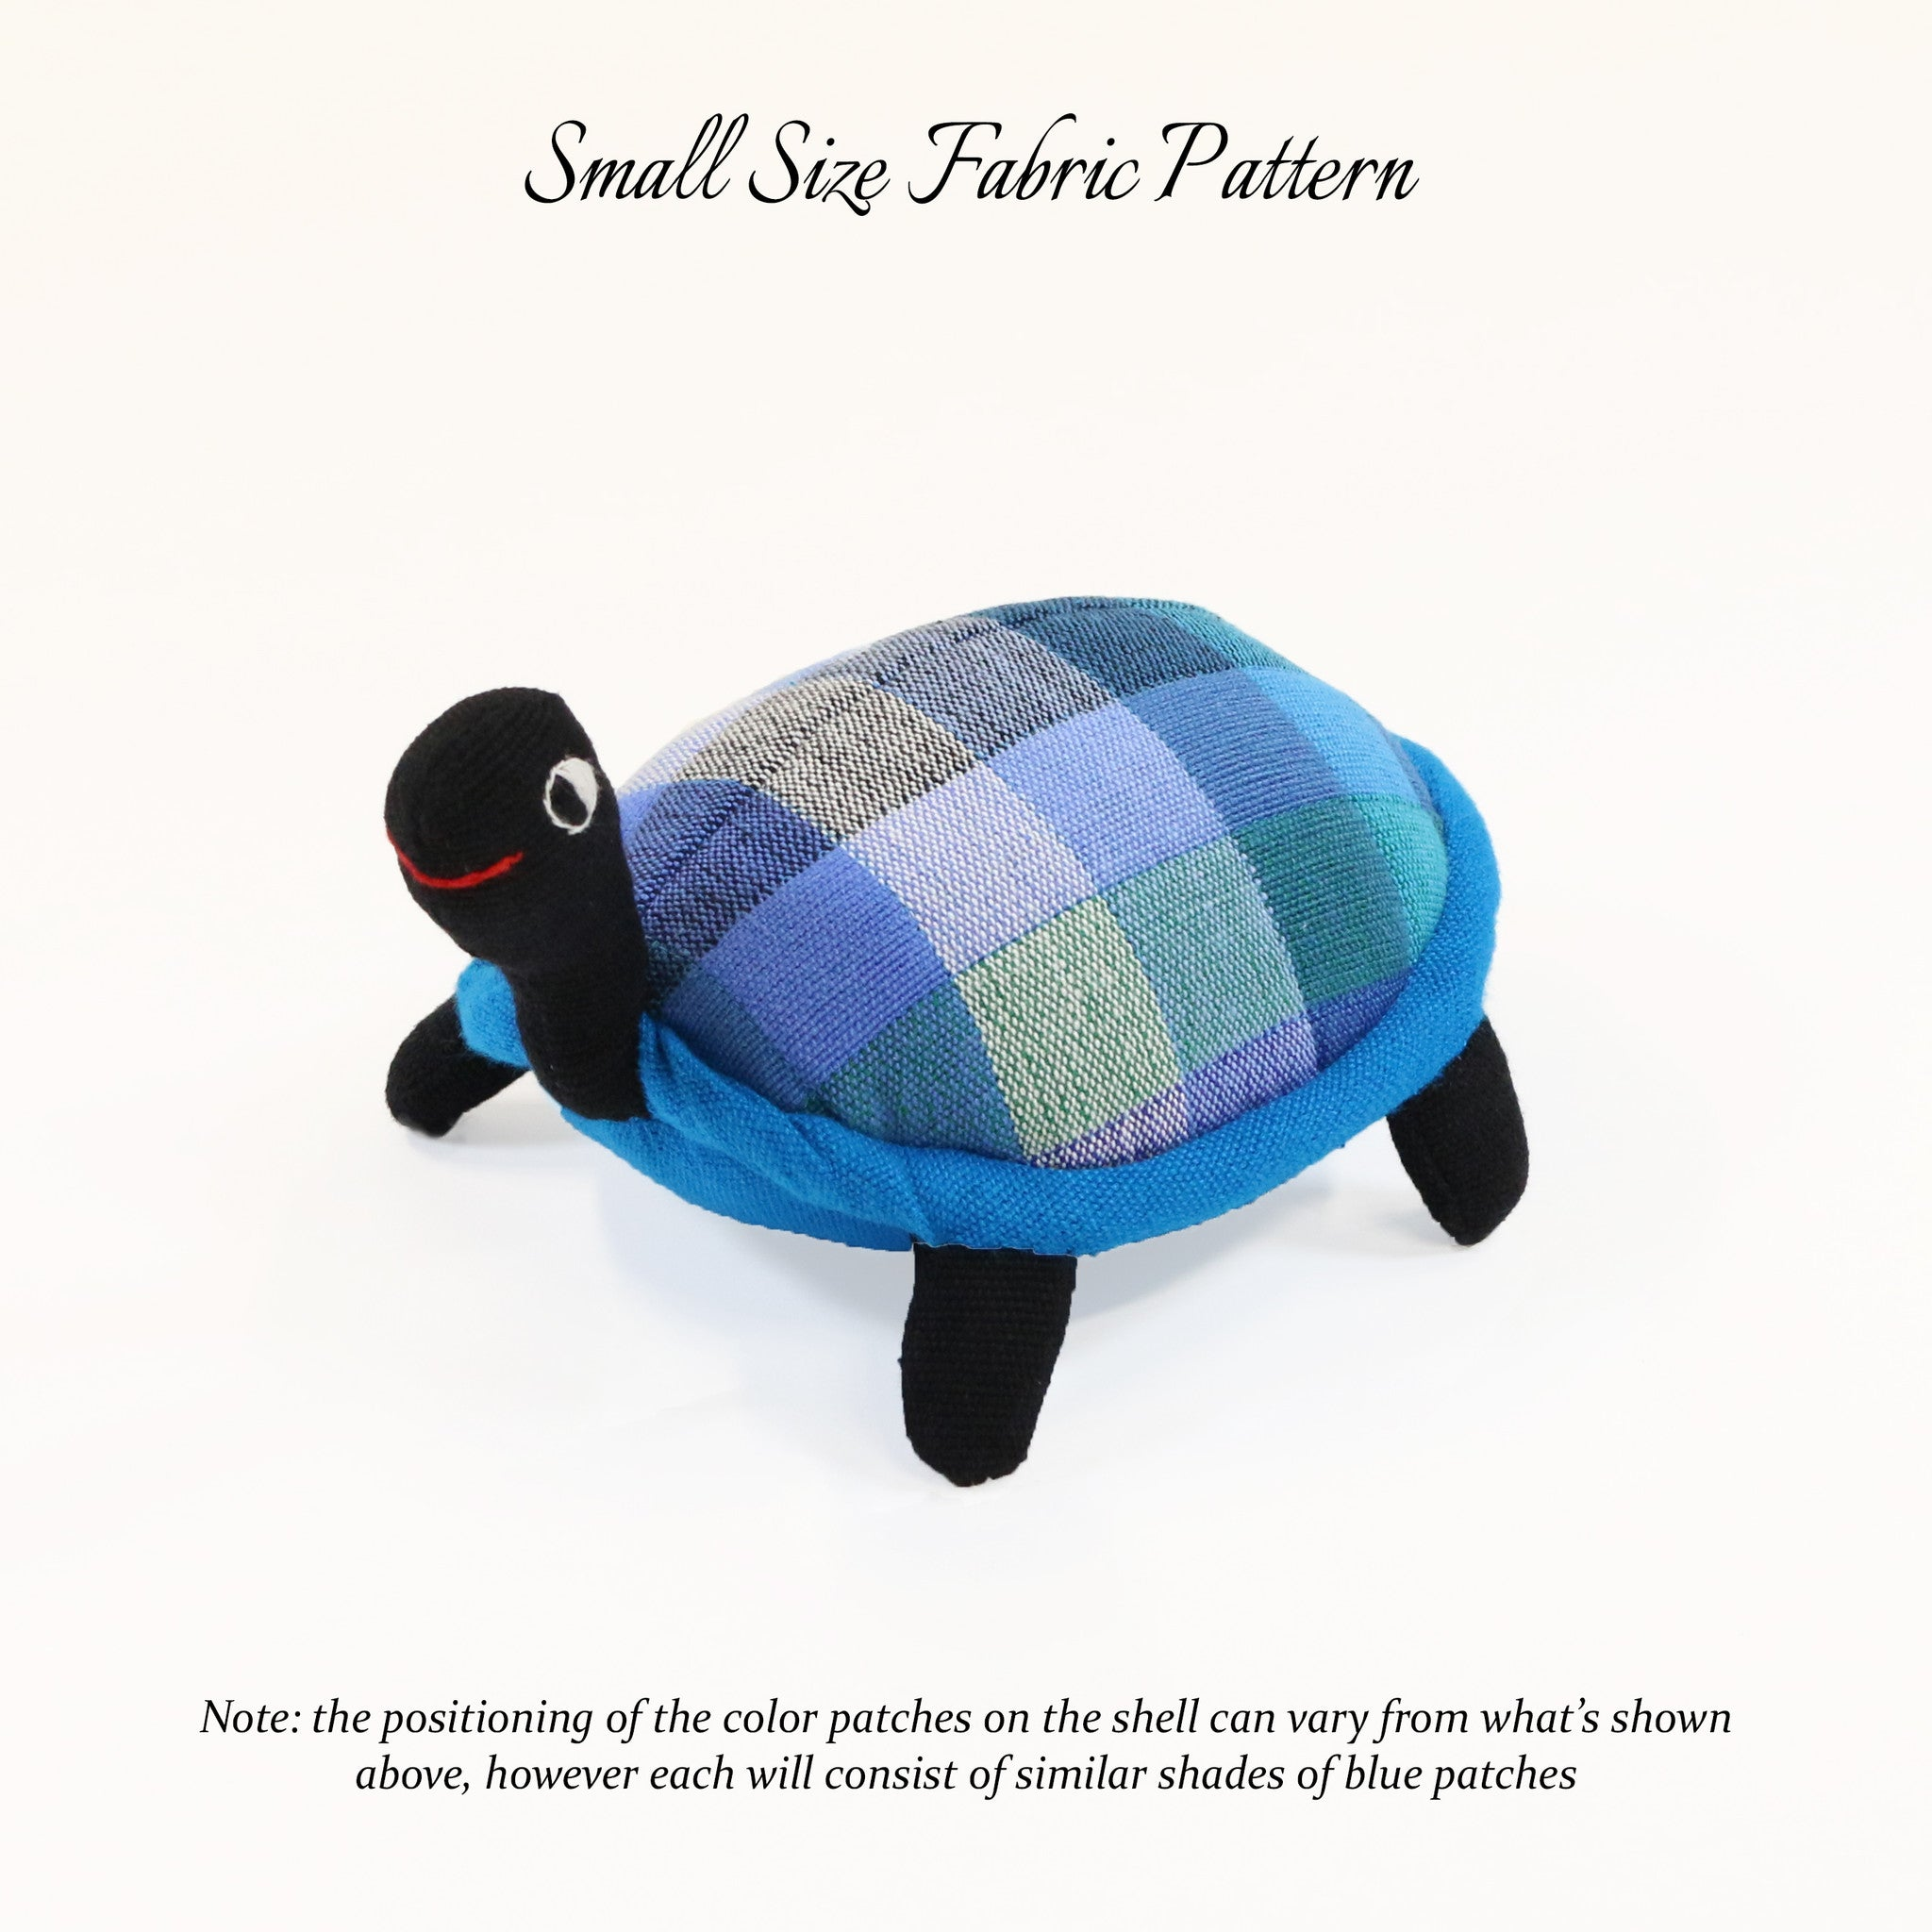 Tommy, the Turtle – small size fabric pattern shown